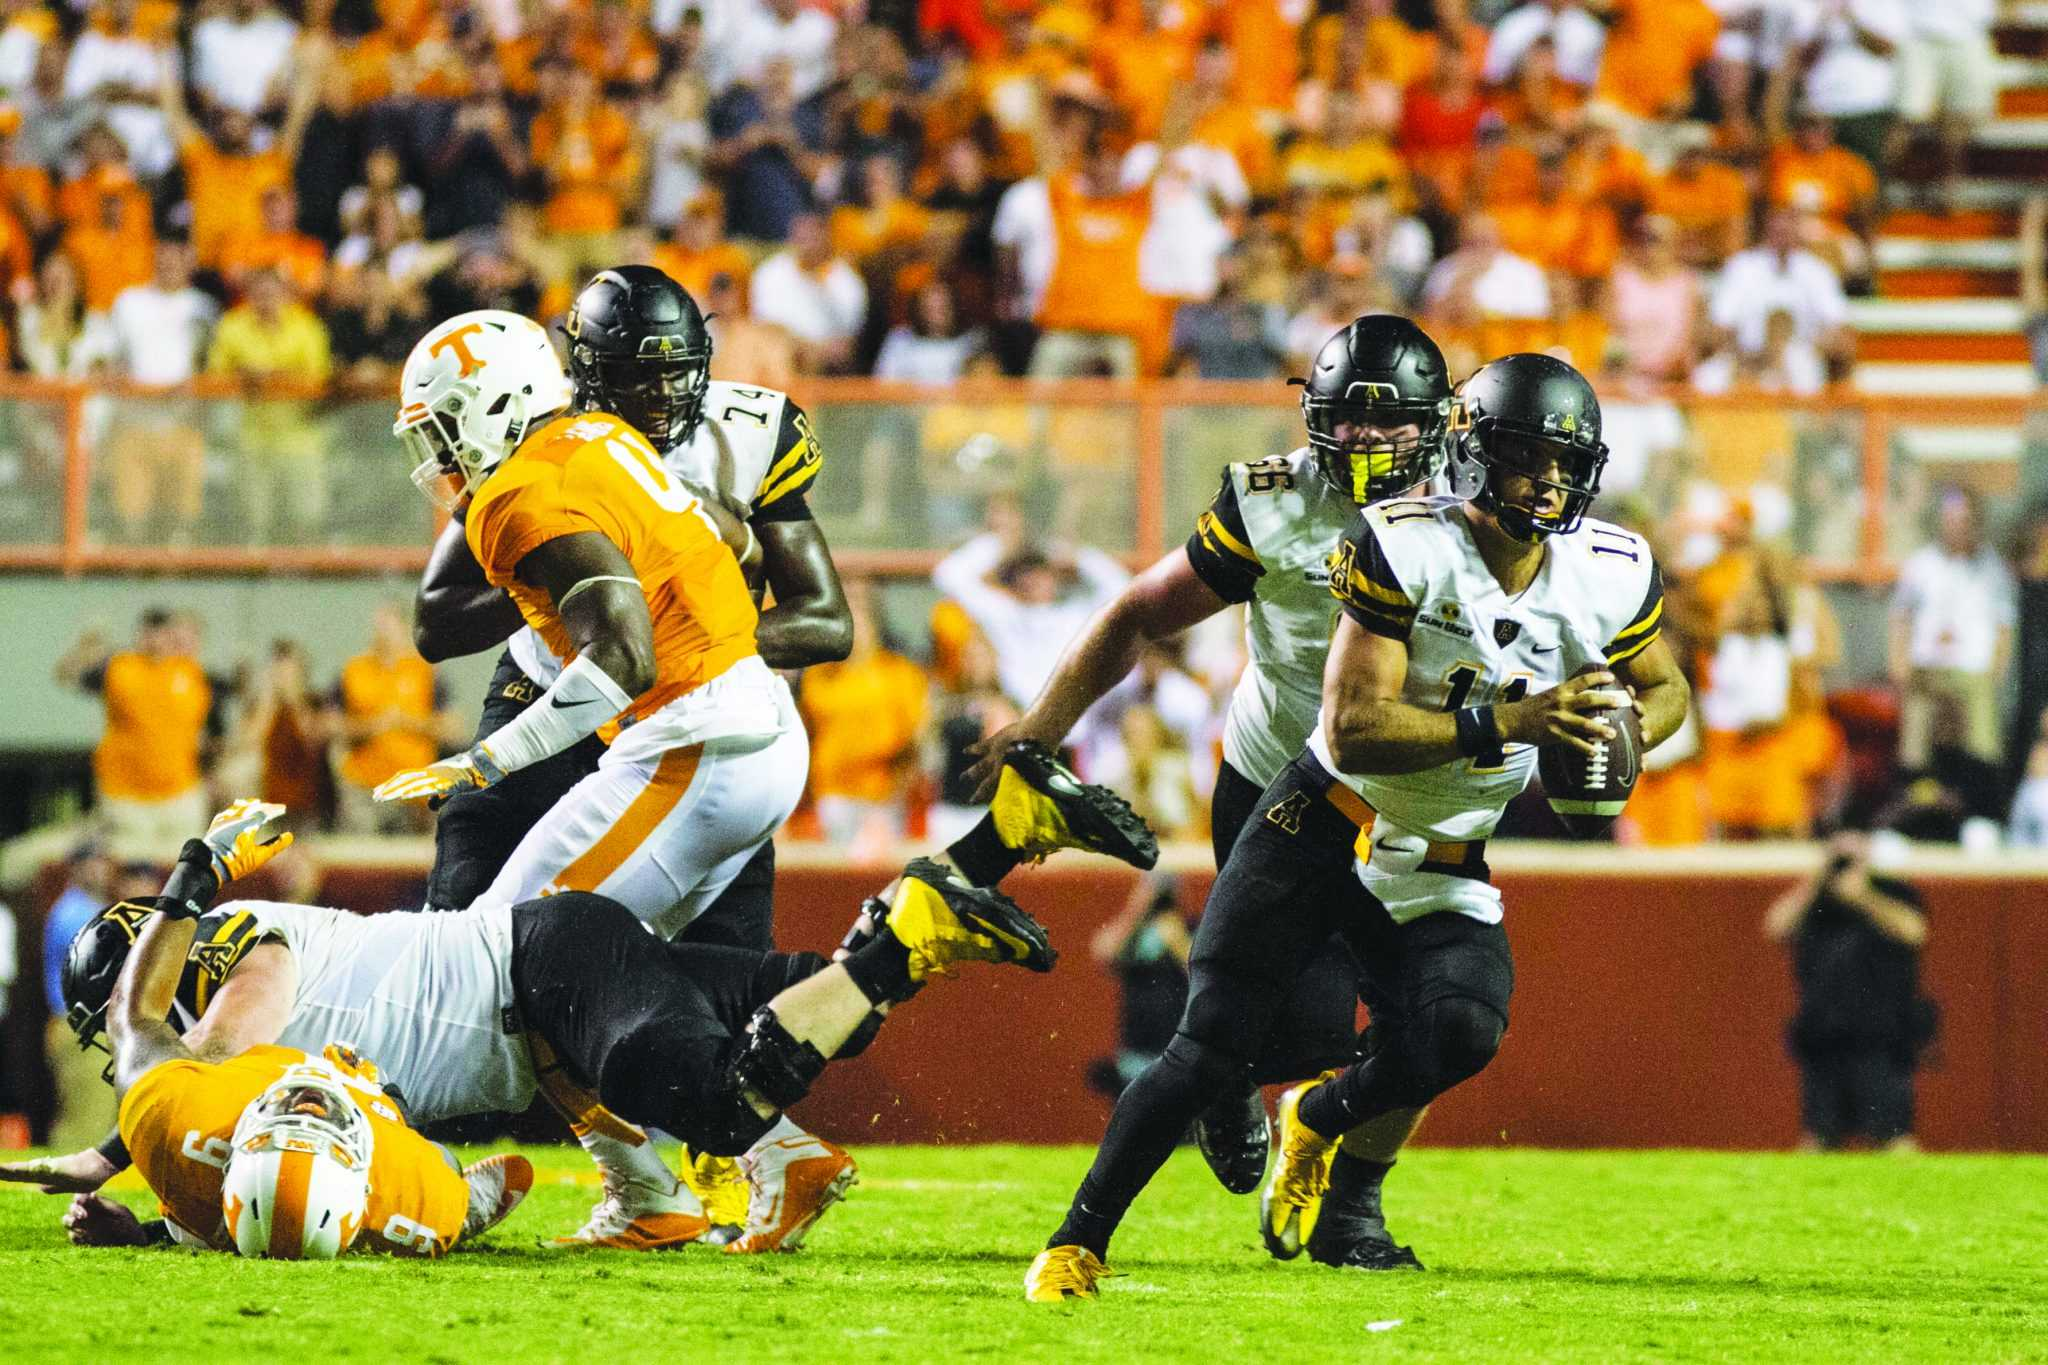 Junior Quarterback, Taylor Lamb, leads the offensive play by running the ball down the field during the Thursday night game against Tennessee. The Mountaineers lost the away game in overtime with the final score being 20-13.